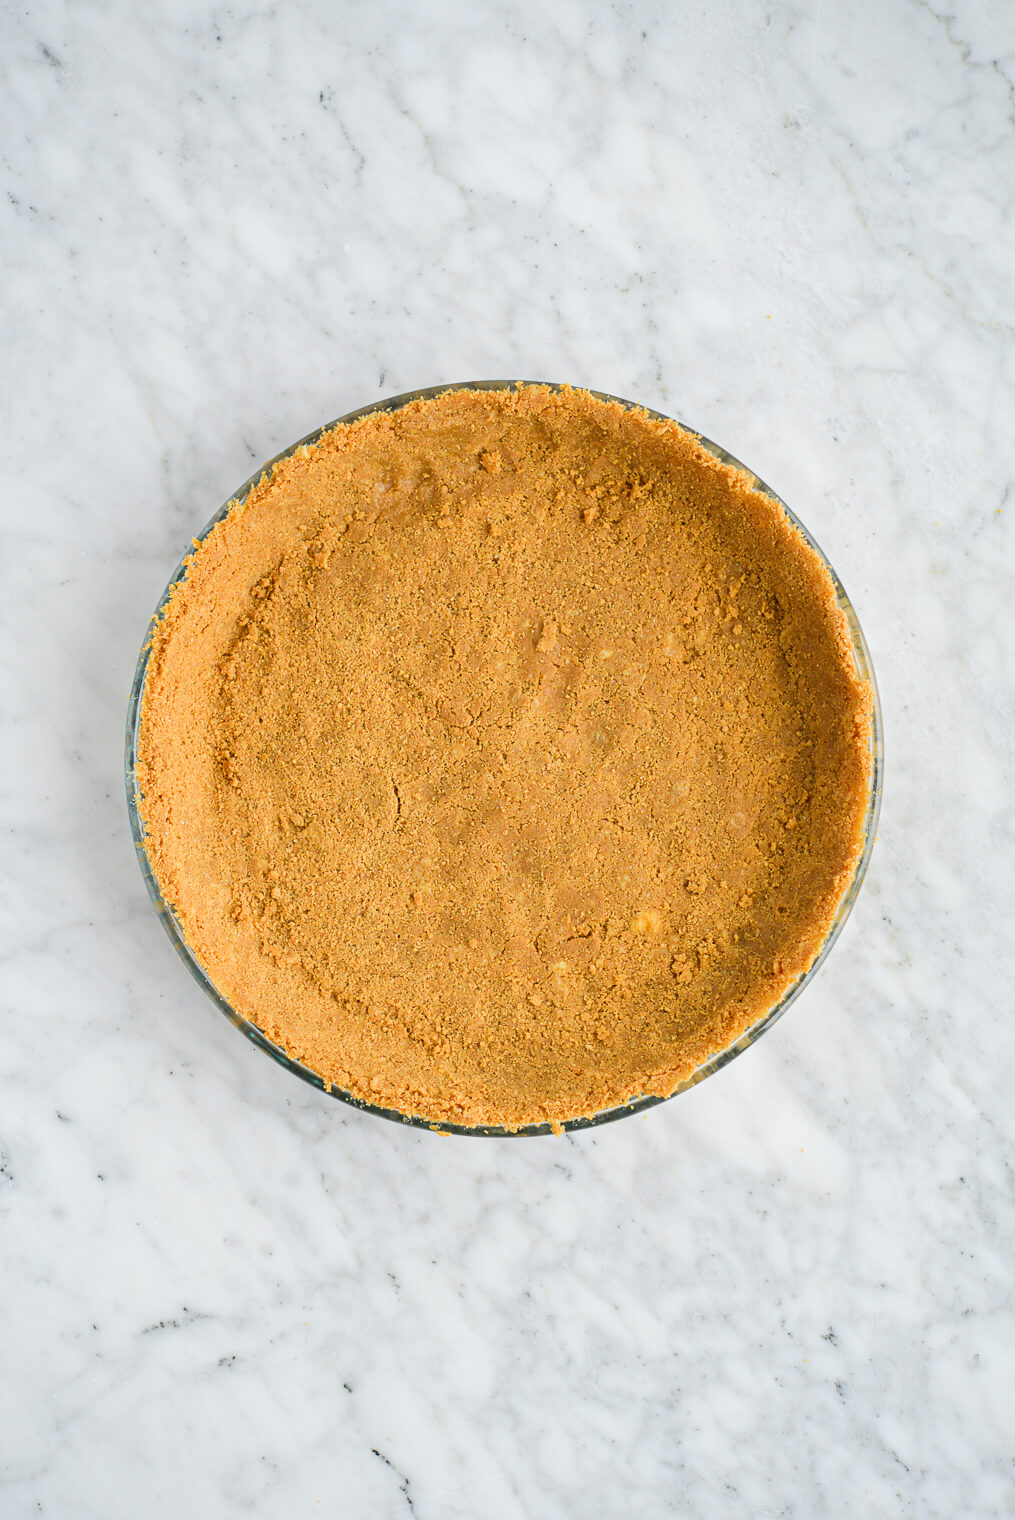 a graham cracker crust pressed into a clear glass pie plate sitting on a marble surface